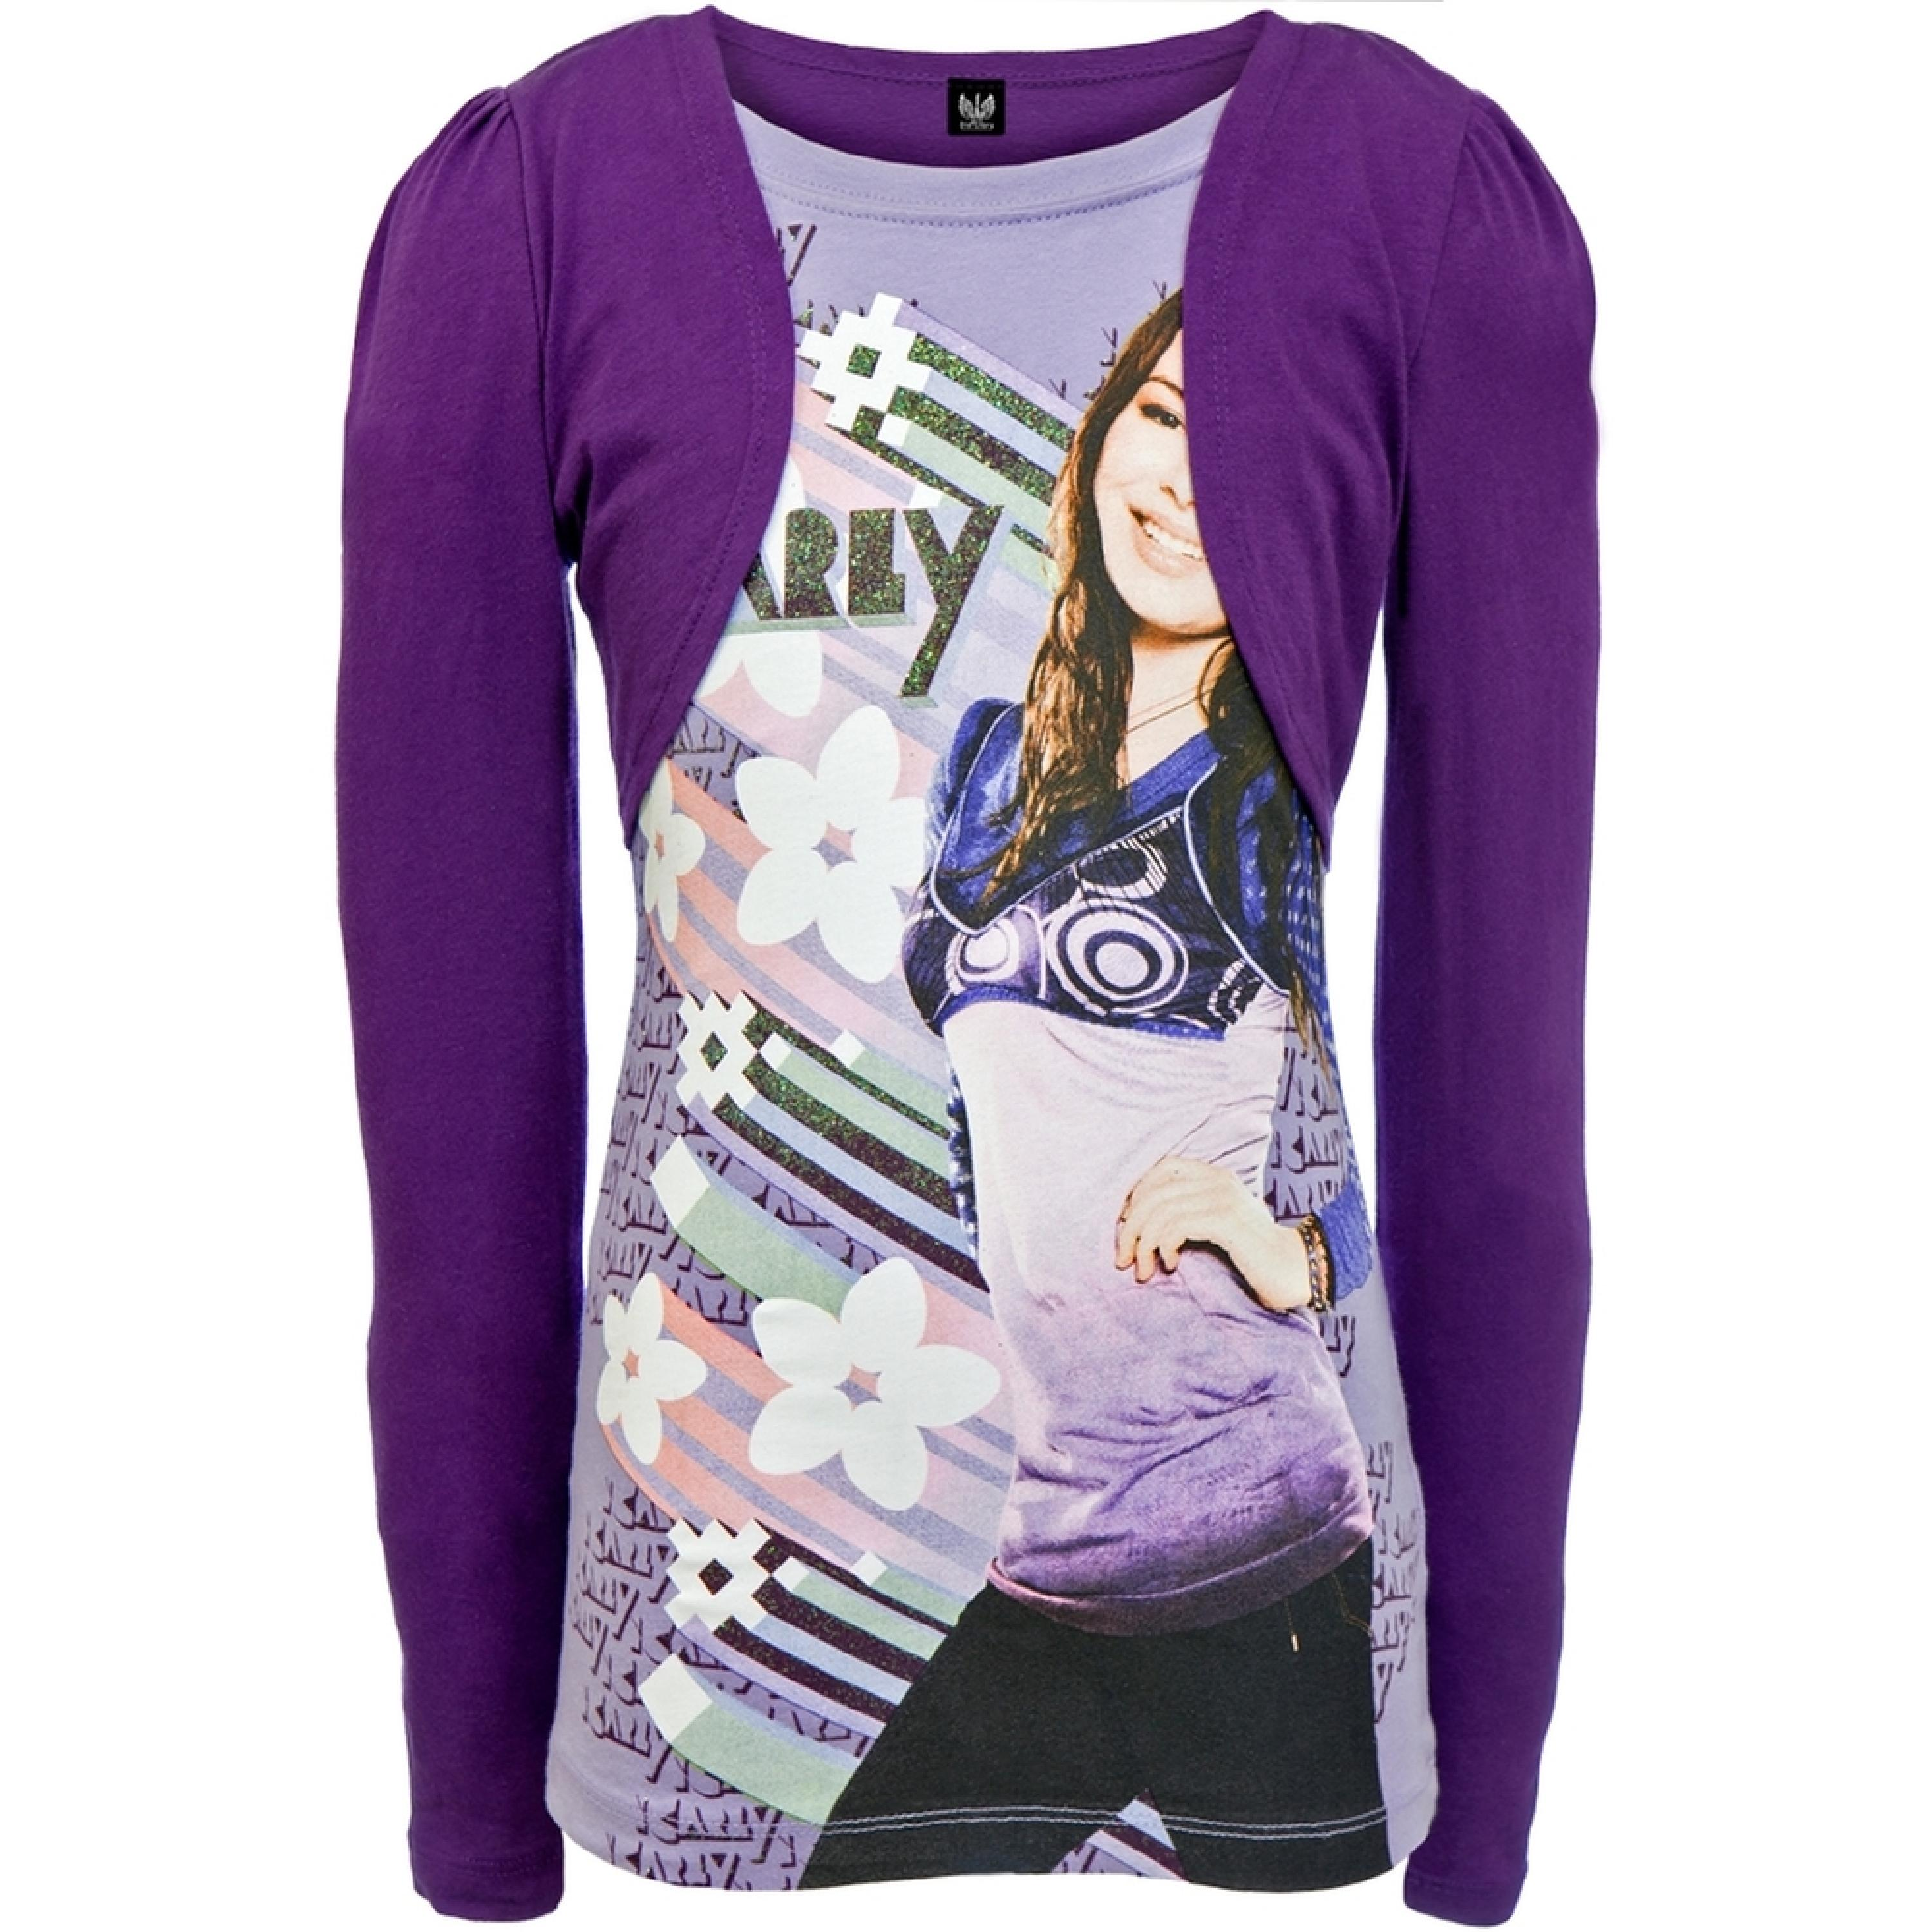 iCarly - Flower Lines Girls Youth 2fer Long Sleeve T-Shirt